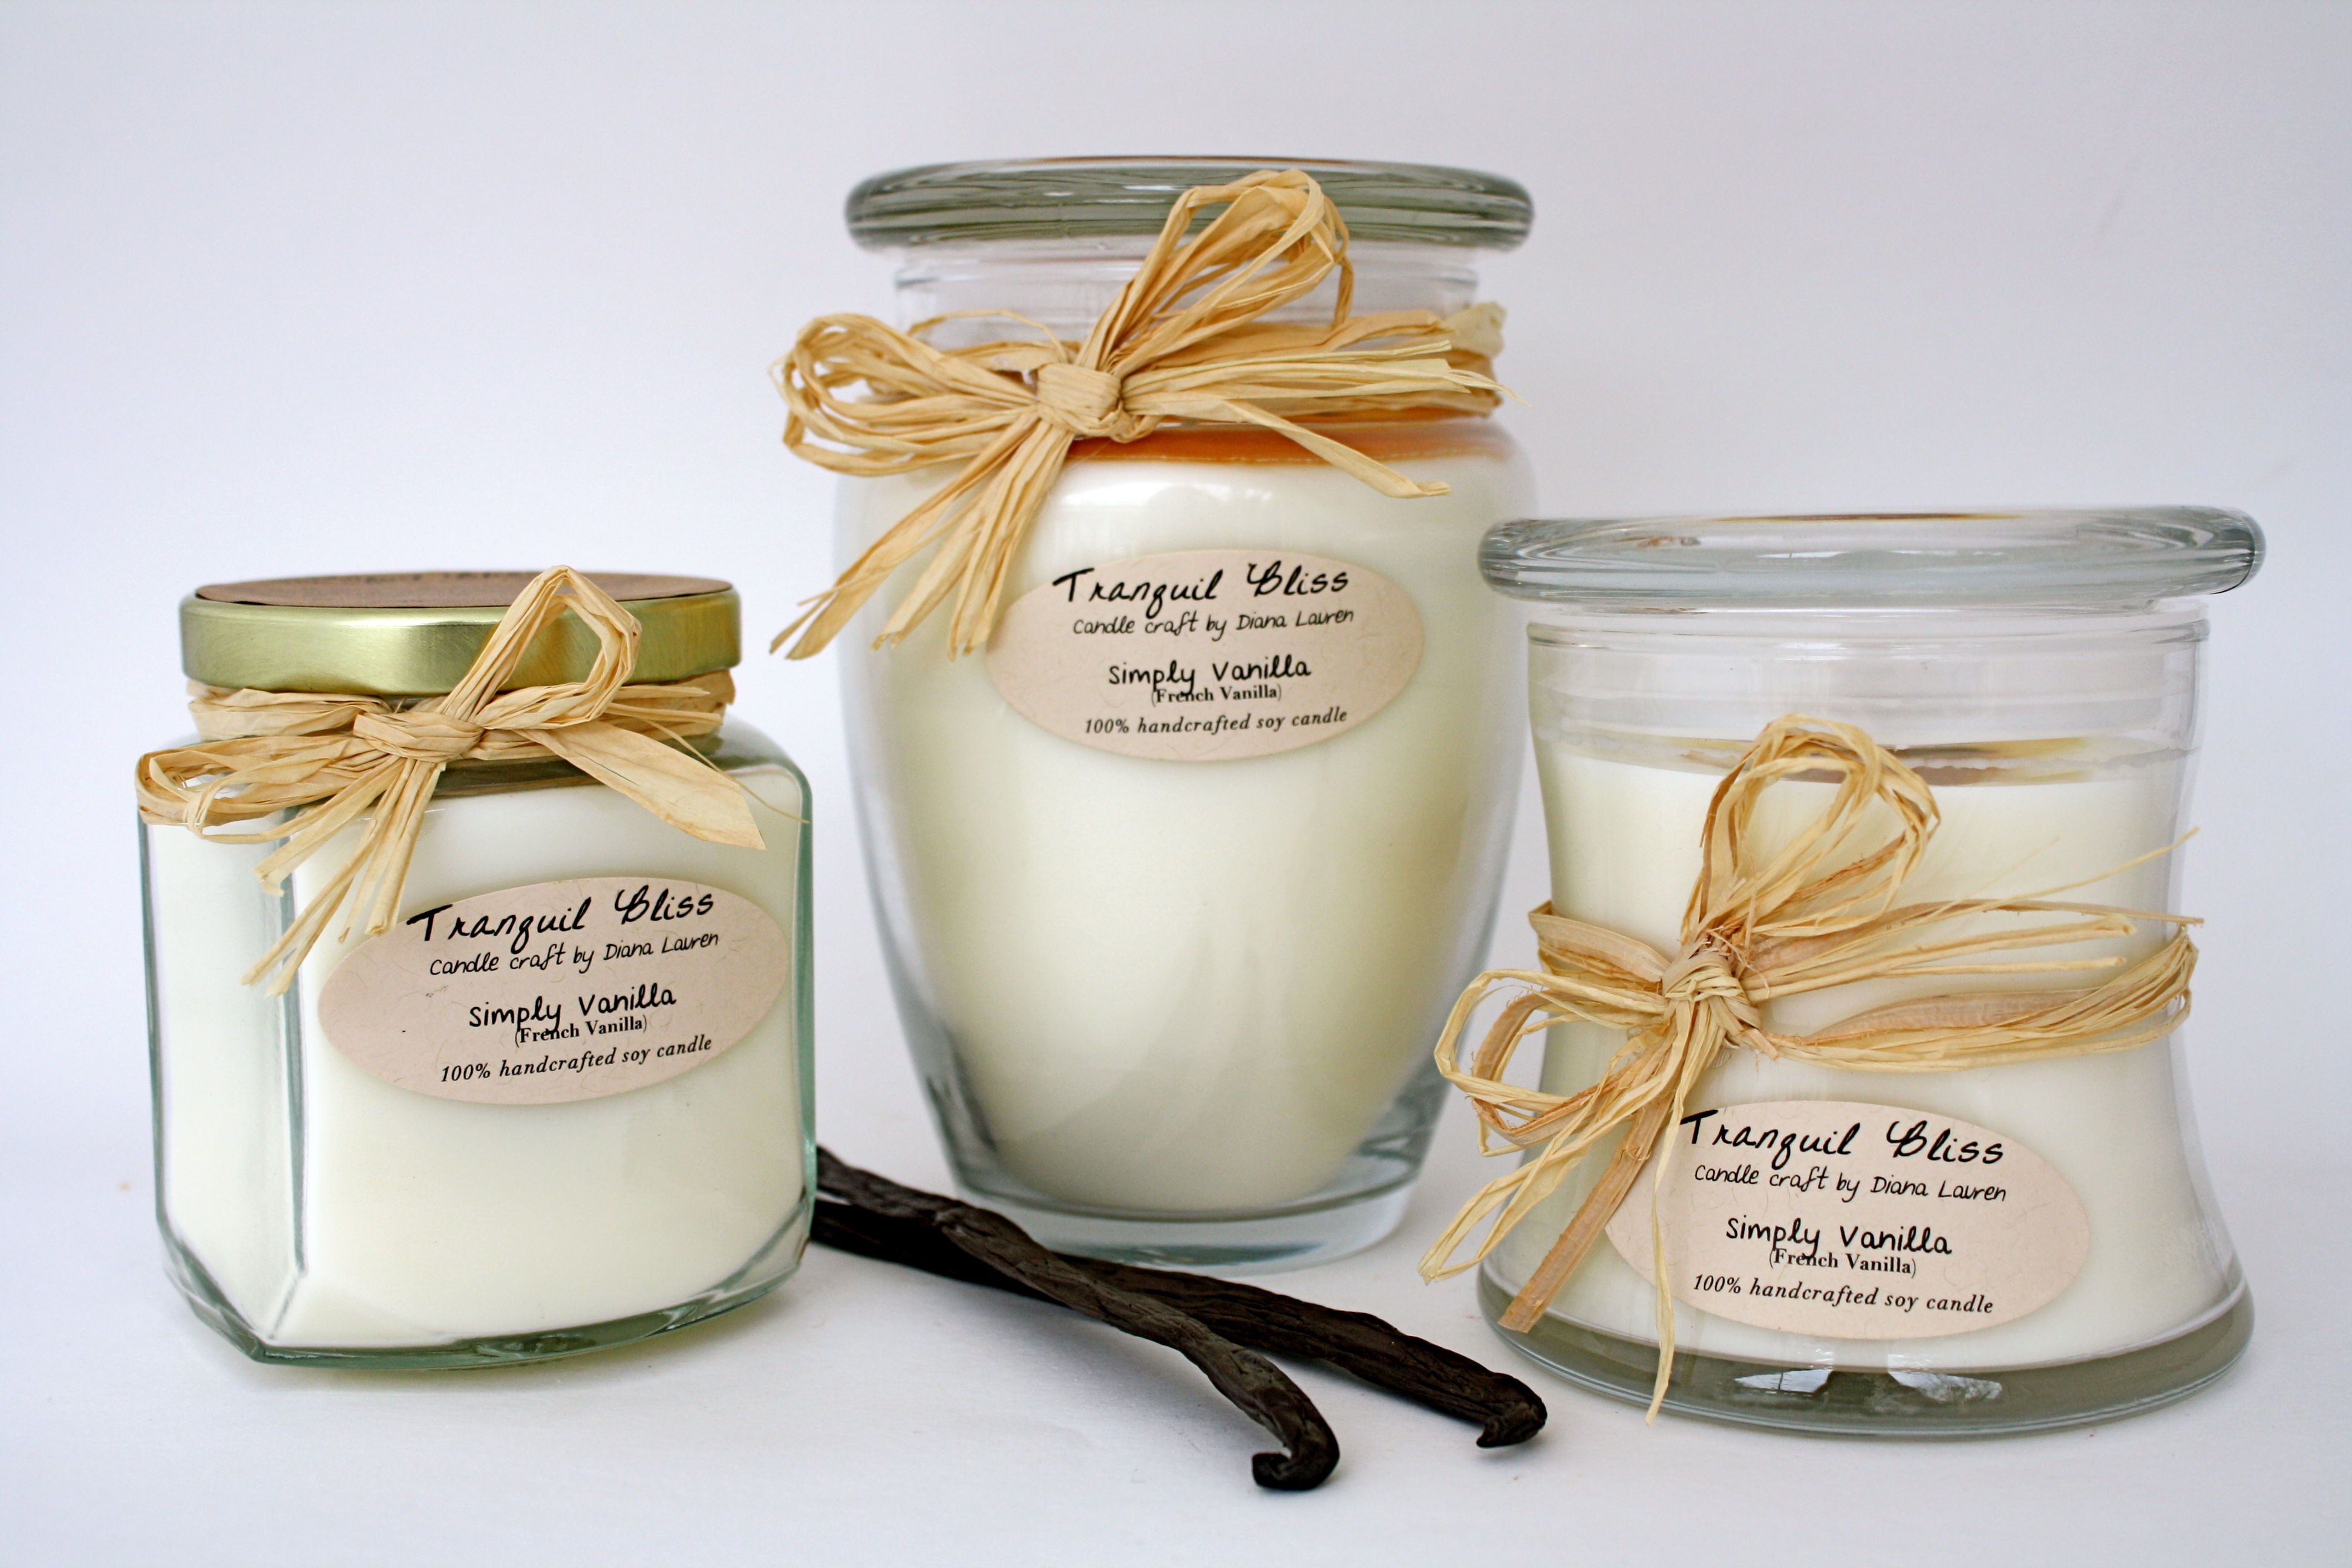 Tranquil Bliss Candle Craft by Diana Lauren 179 Jefferson St, East ...